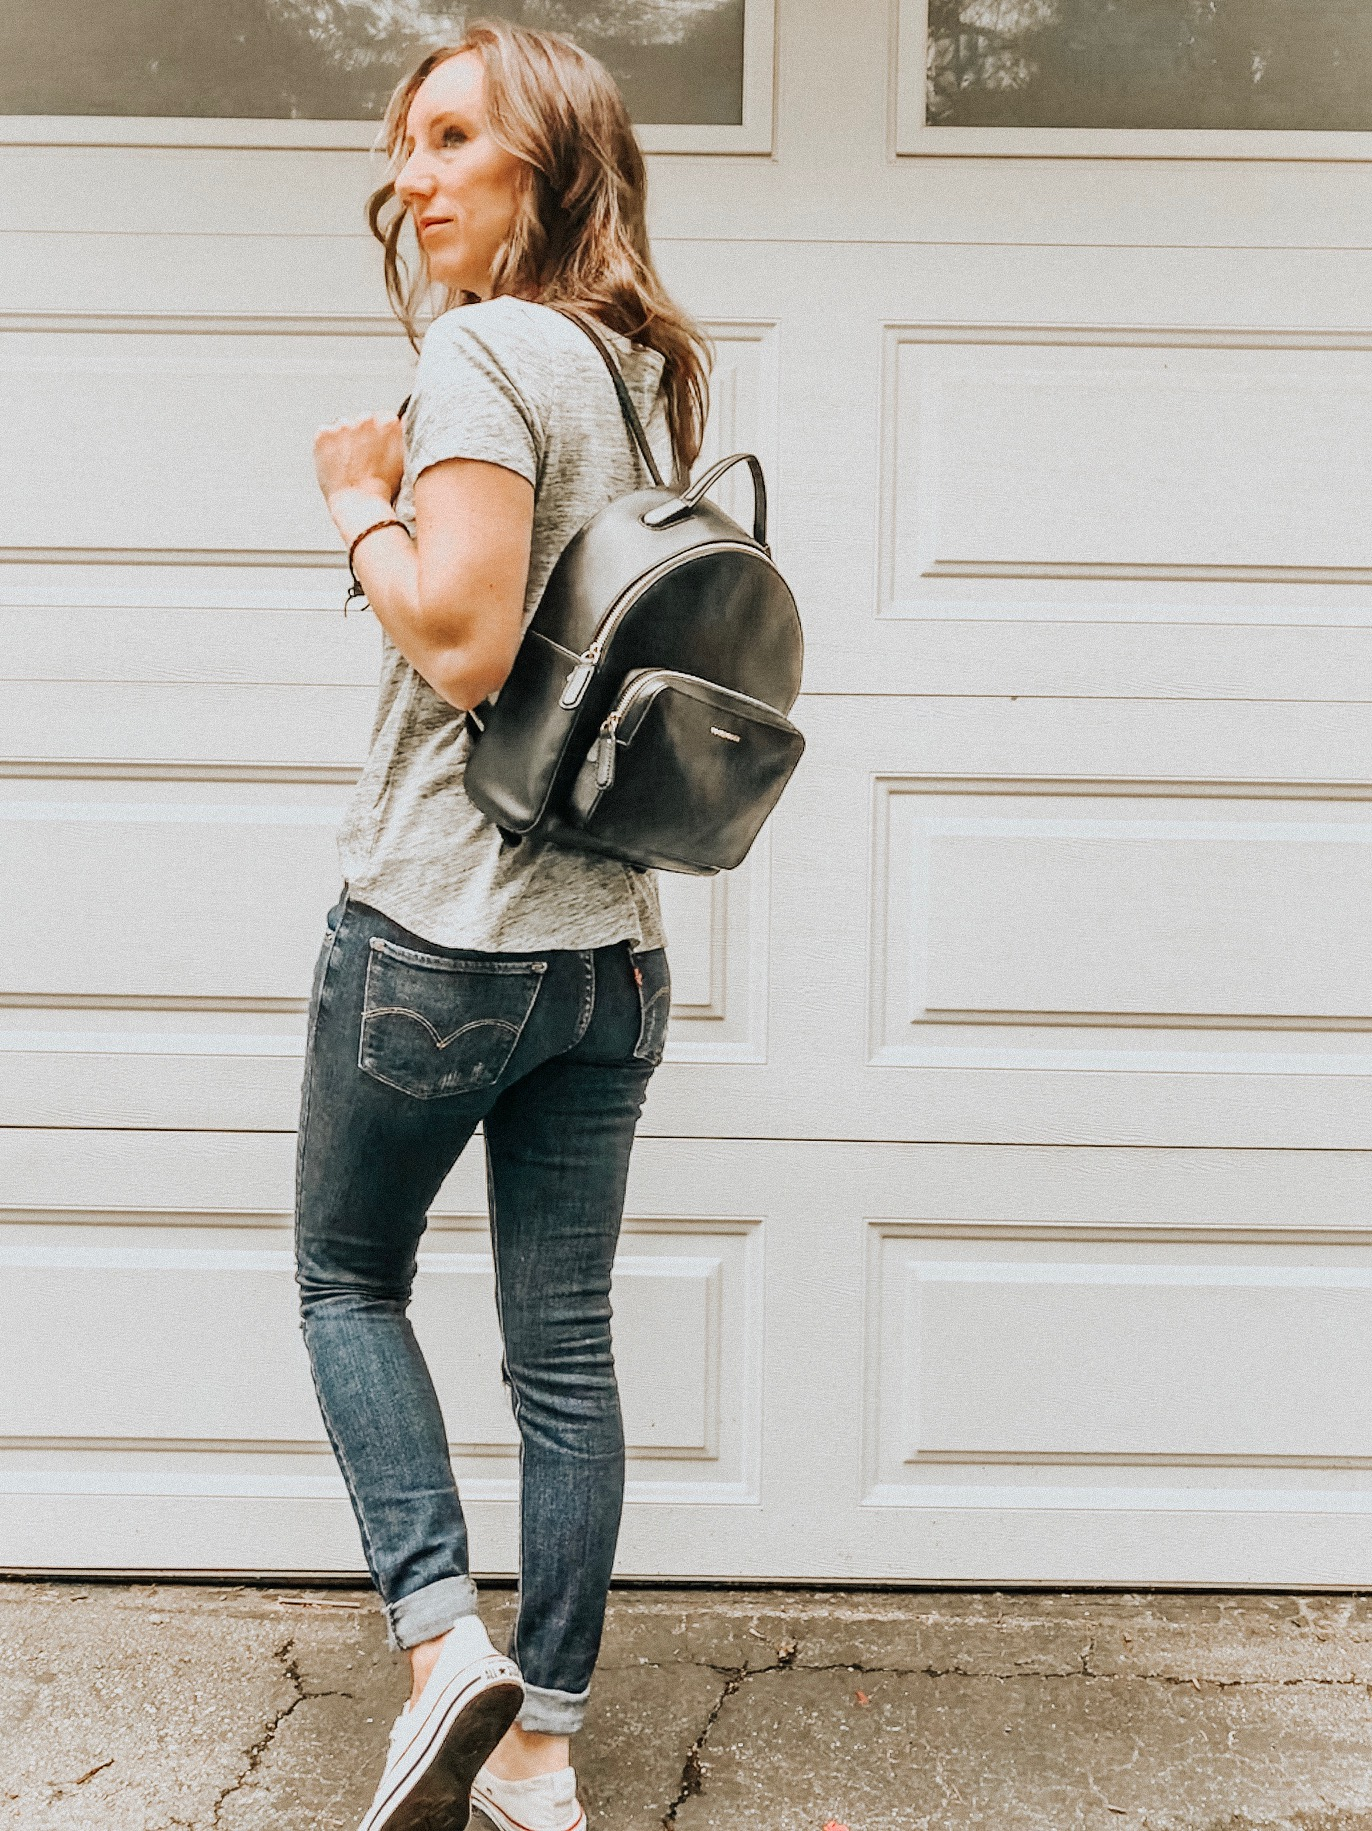 Must have items to complete your fall looks #carryall #backpack #momstyle